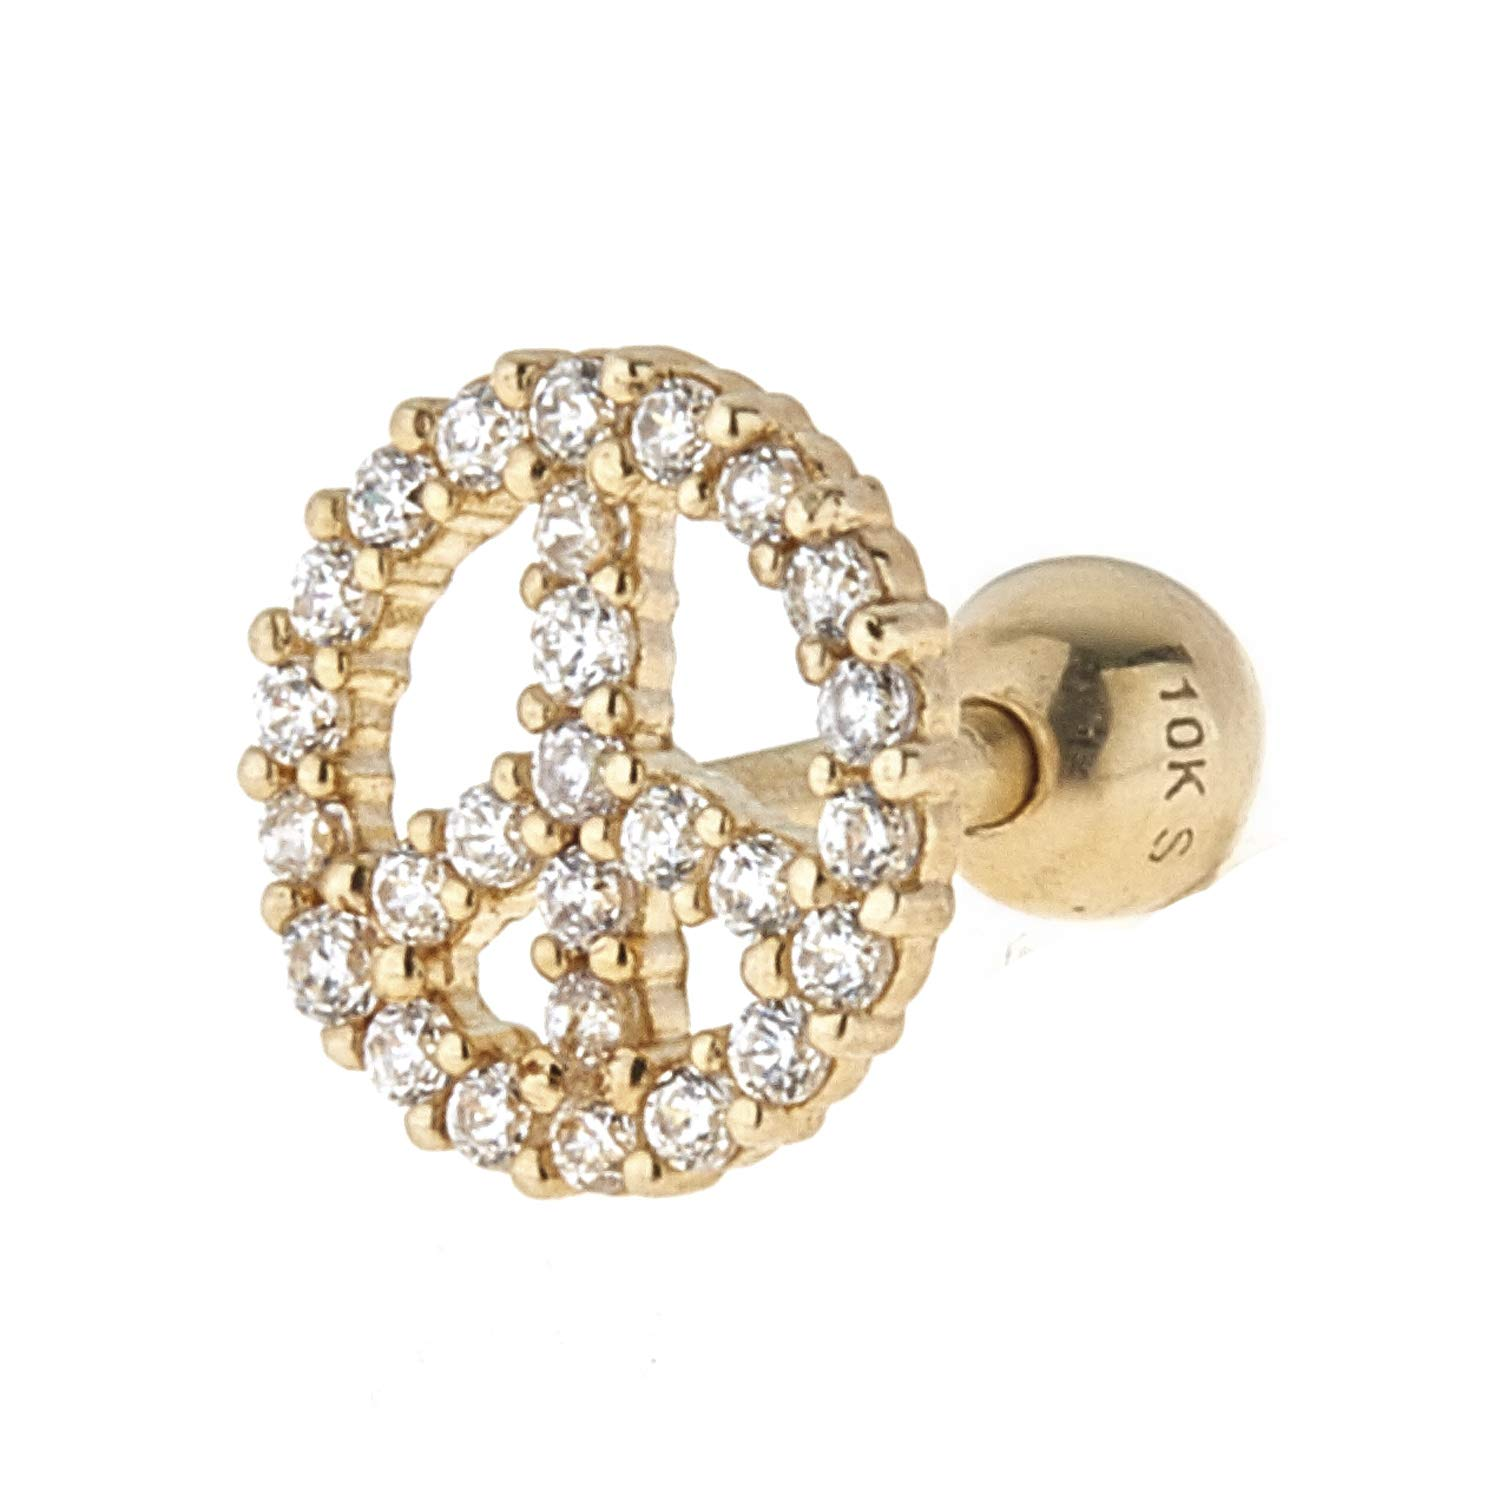 Zahaav Jewelry 10kt Solid Yellow Gold Peace Symbol Design Cartilage Earring with CZ AMU1031-TY